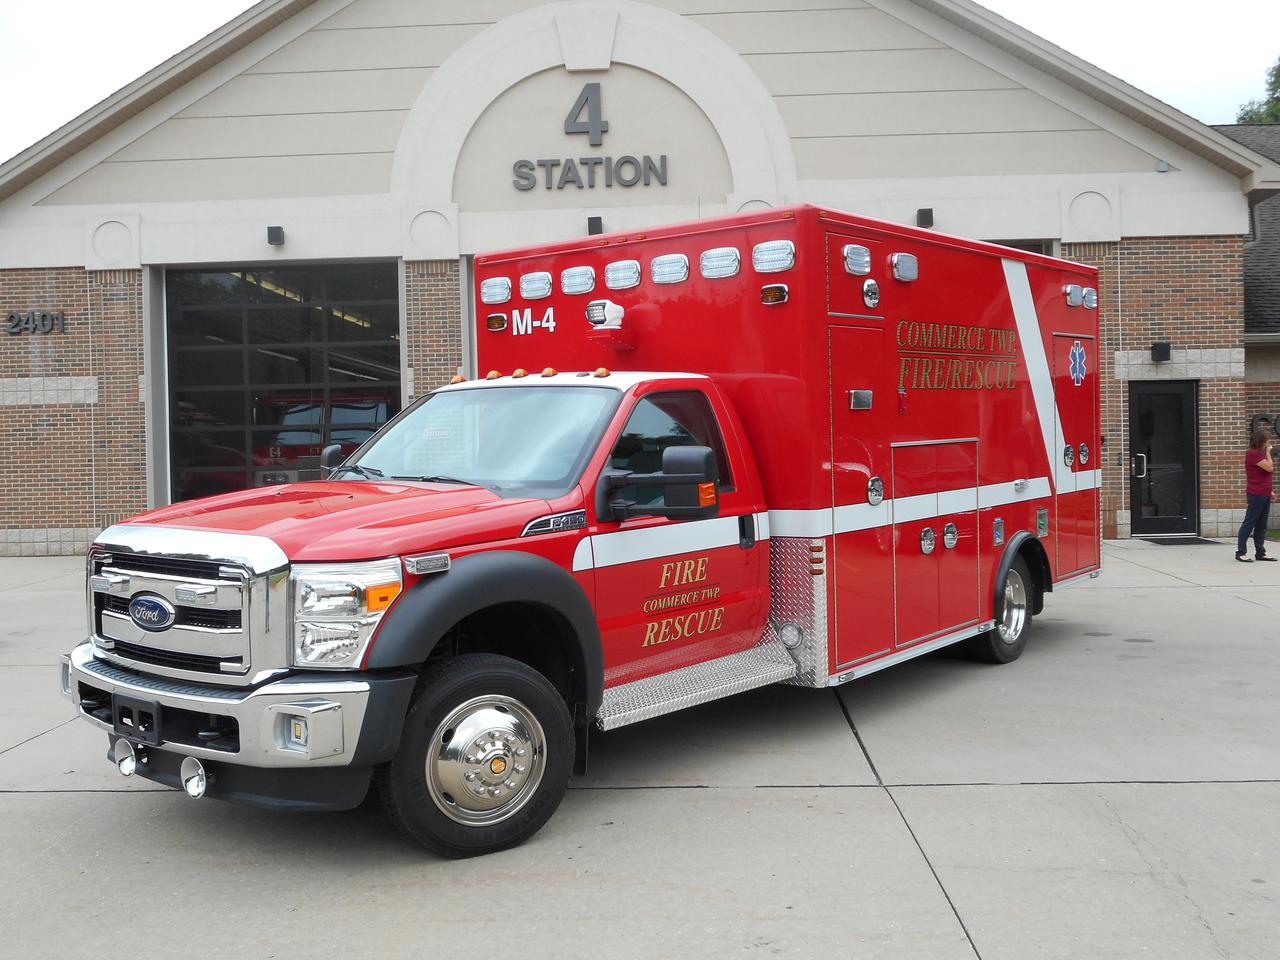 Find Type 1 ambulances for sale at Mercy Sales and Service.